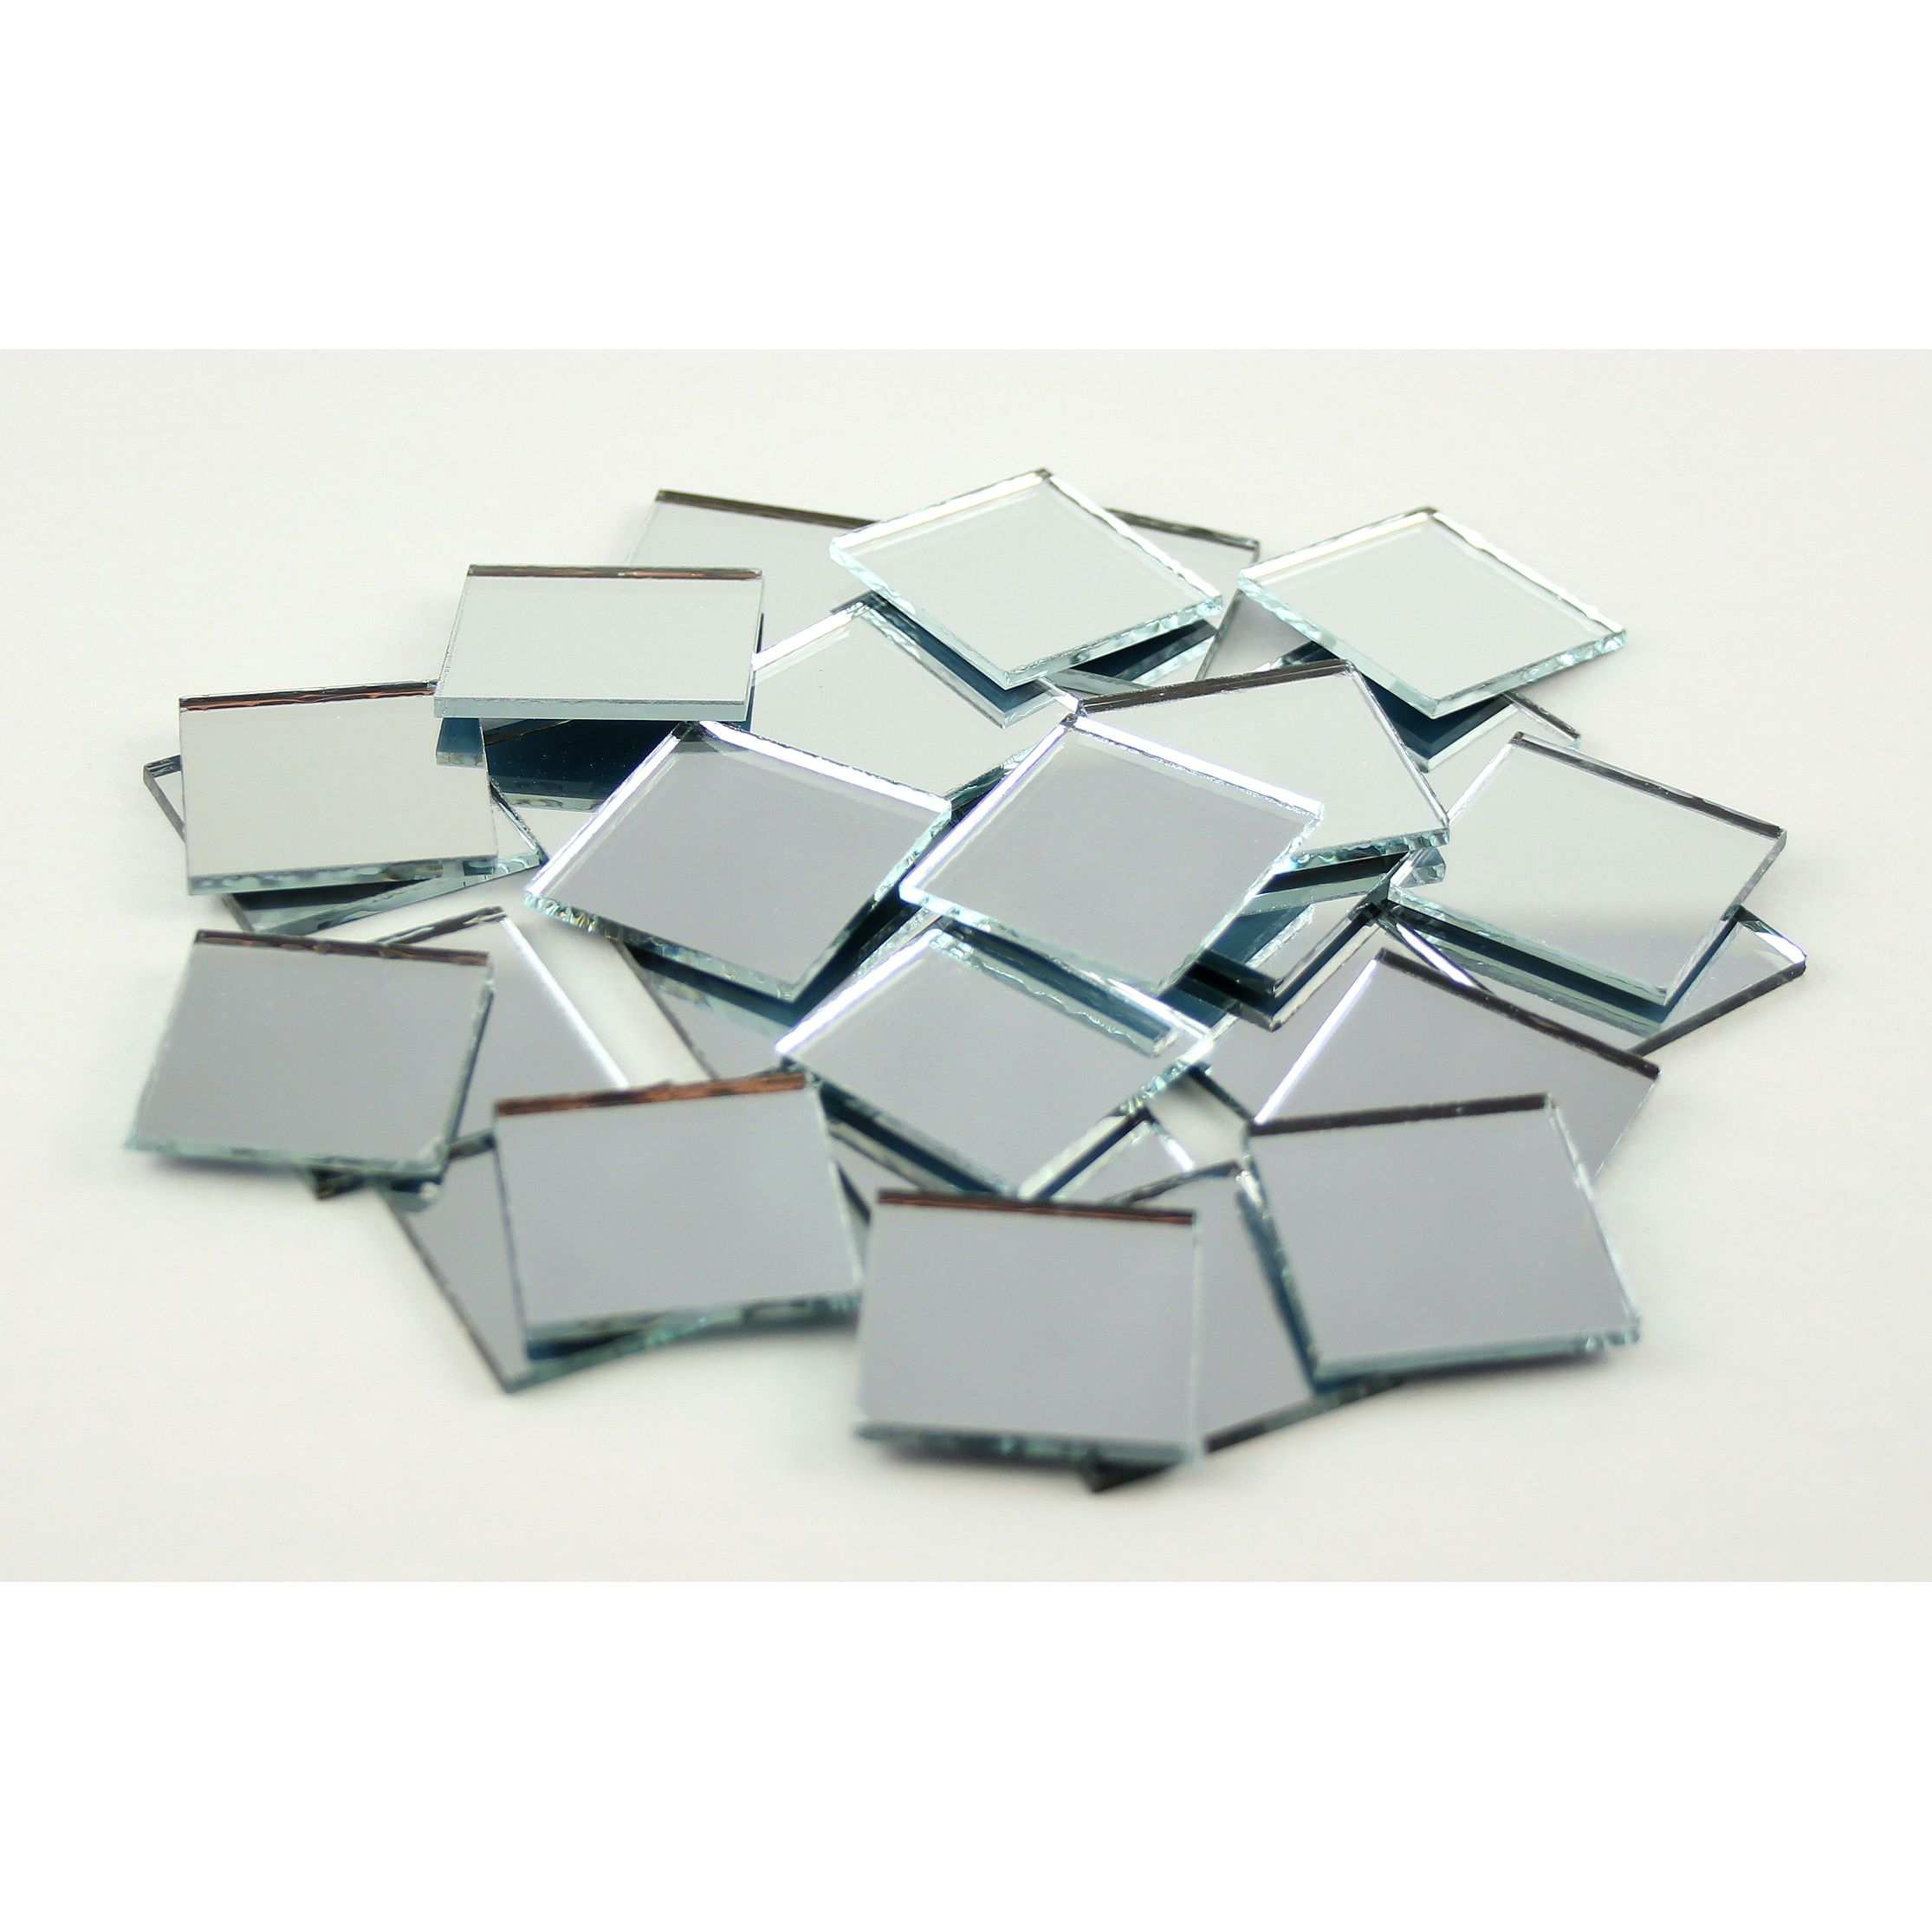 Small Mirror Pieces: 1 Inch Glass Craft Small Square Mirrors Bulk 100 Pieces